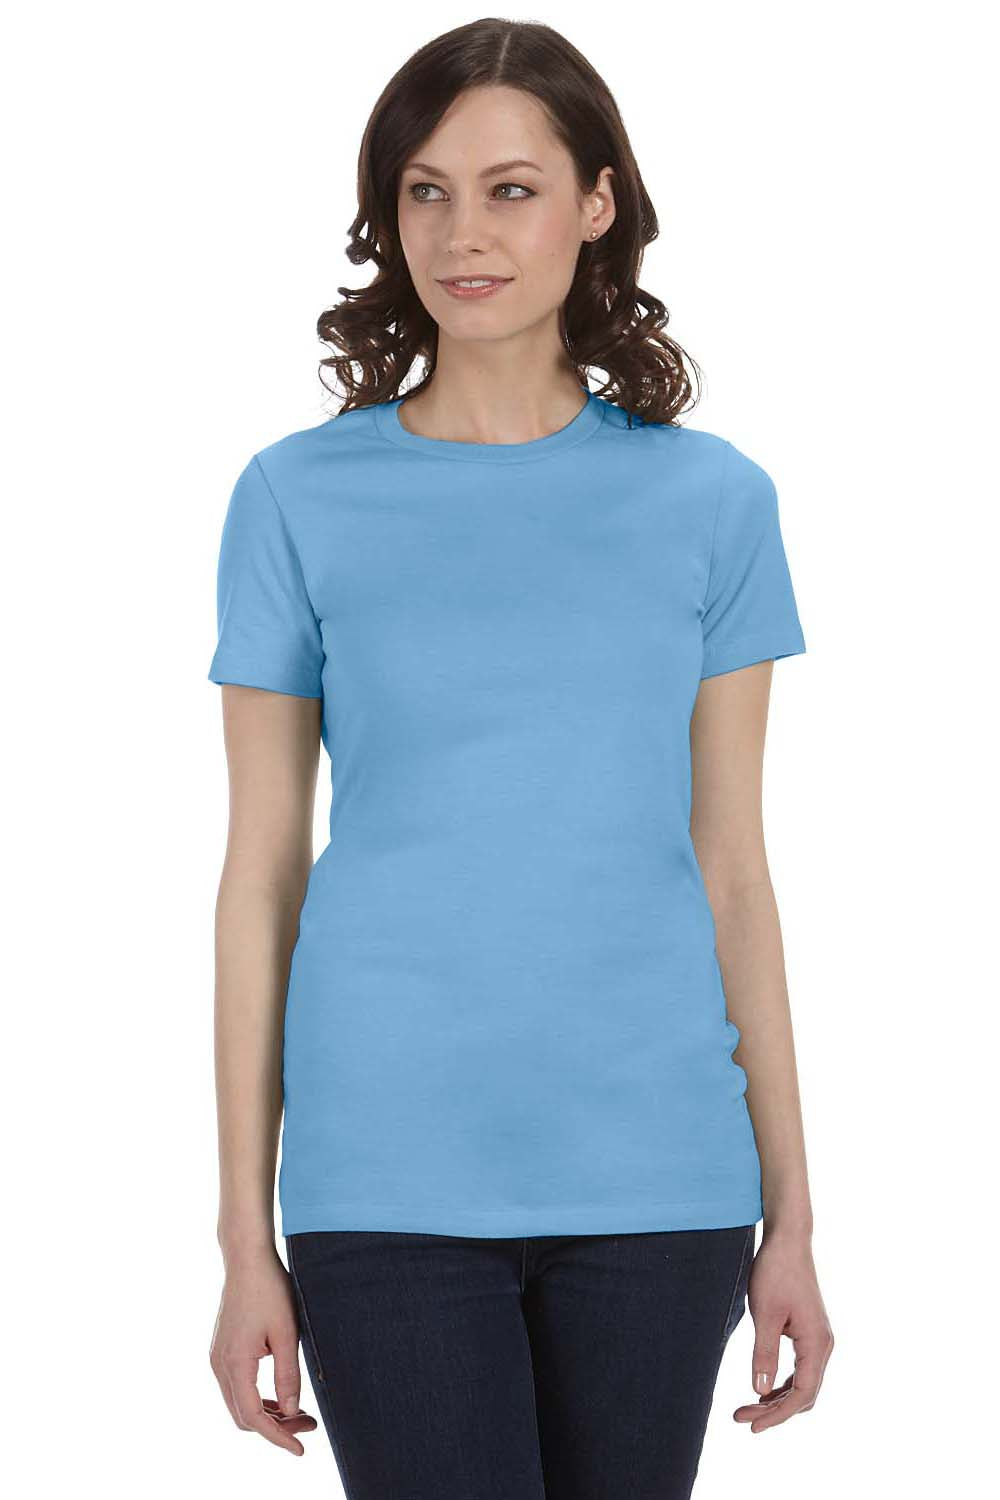 Bella + Canvas 6004 Womens The Favorite Short Sleeve Crewneck T-Shirt Ocean Blue Front